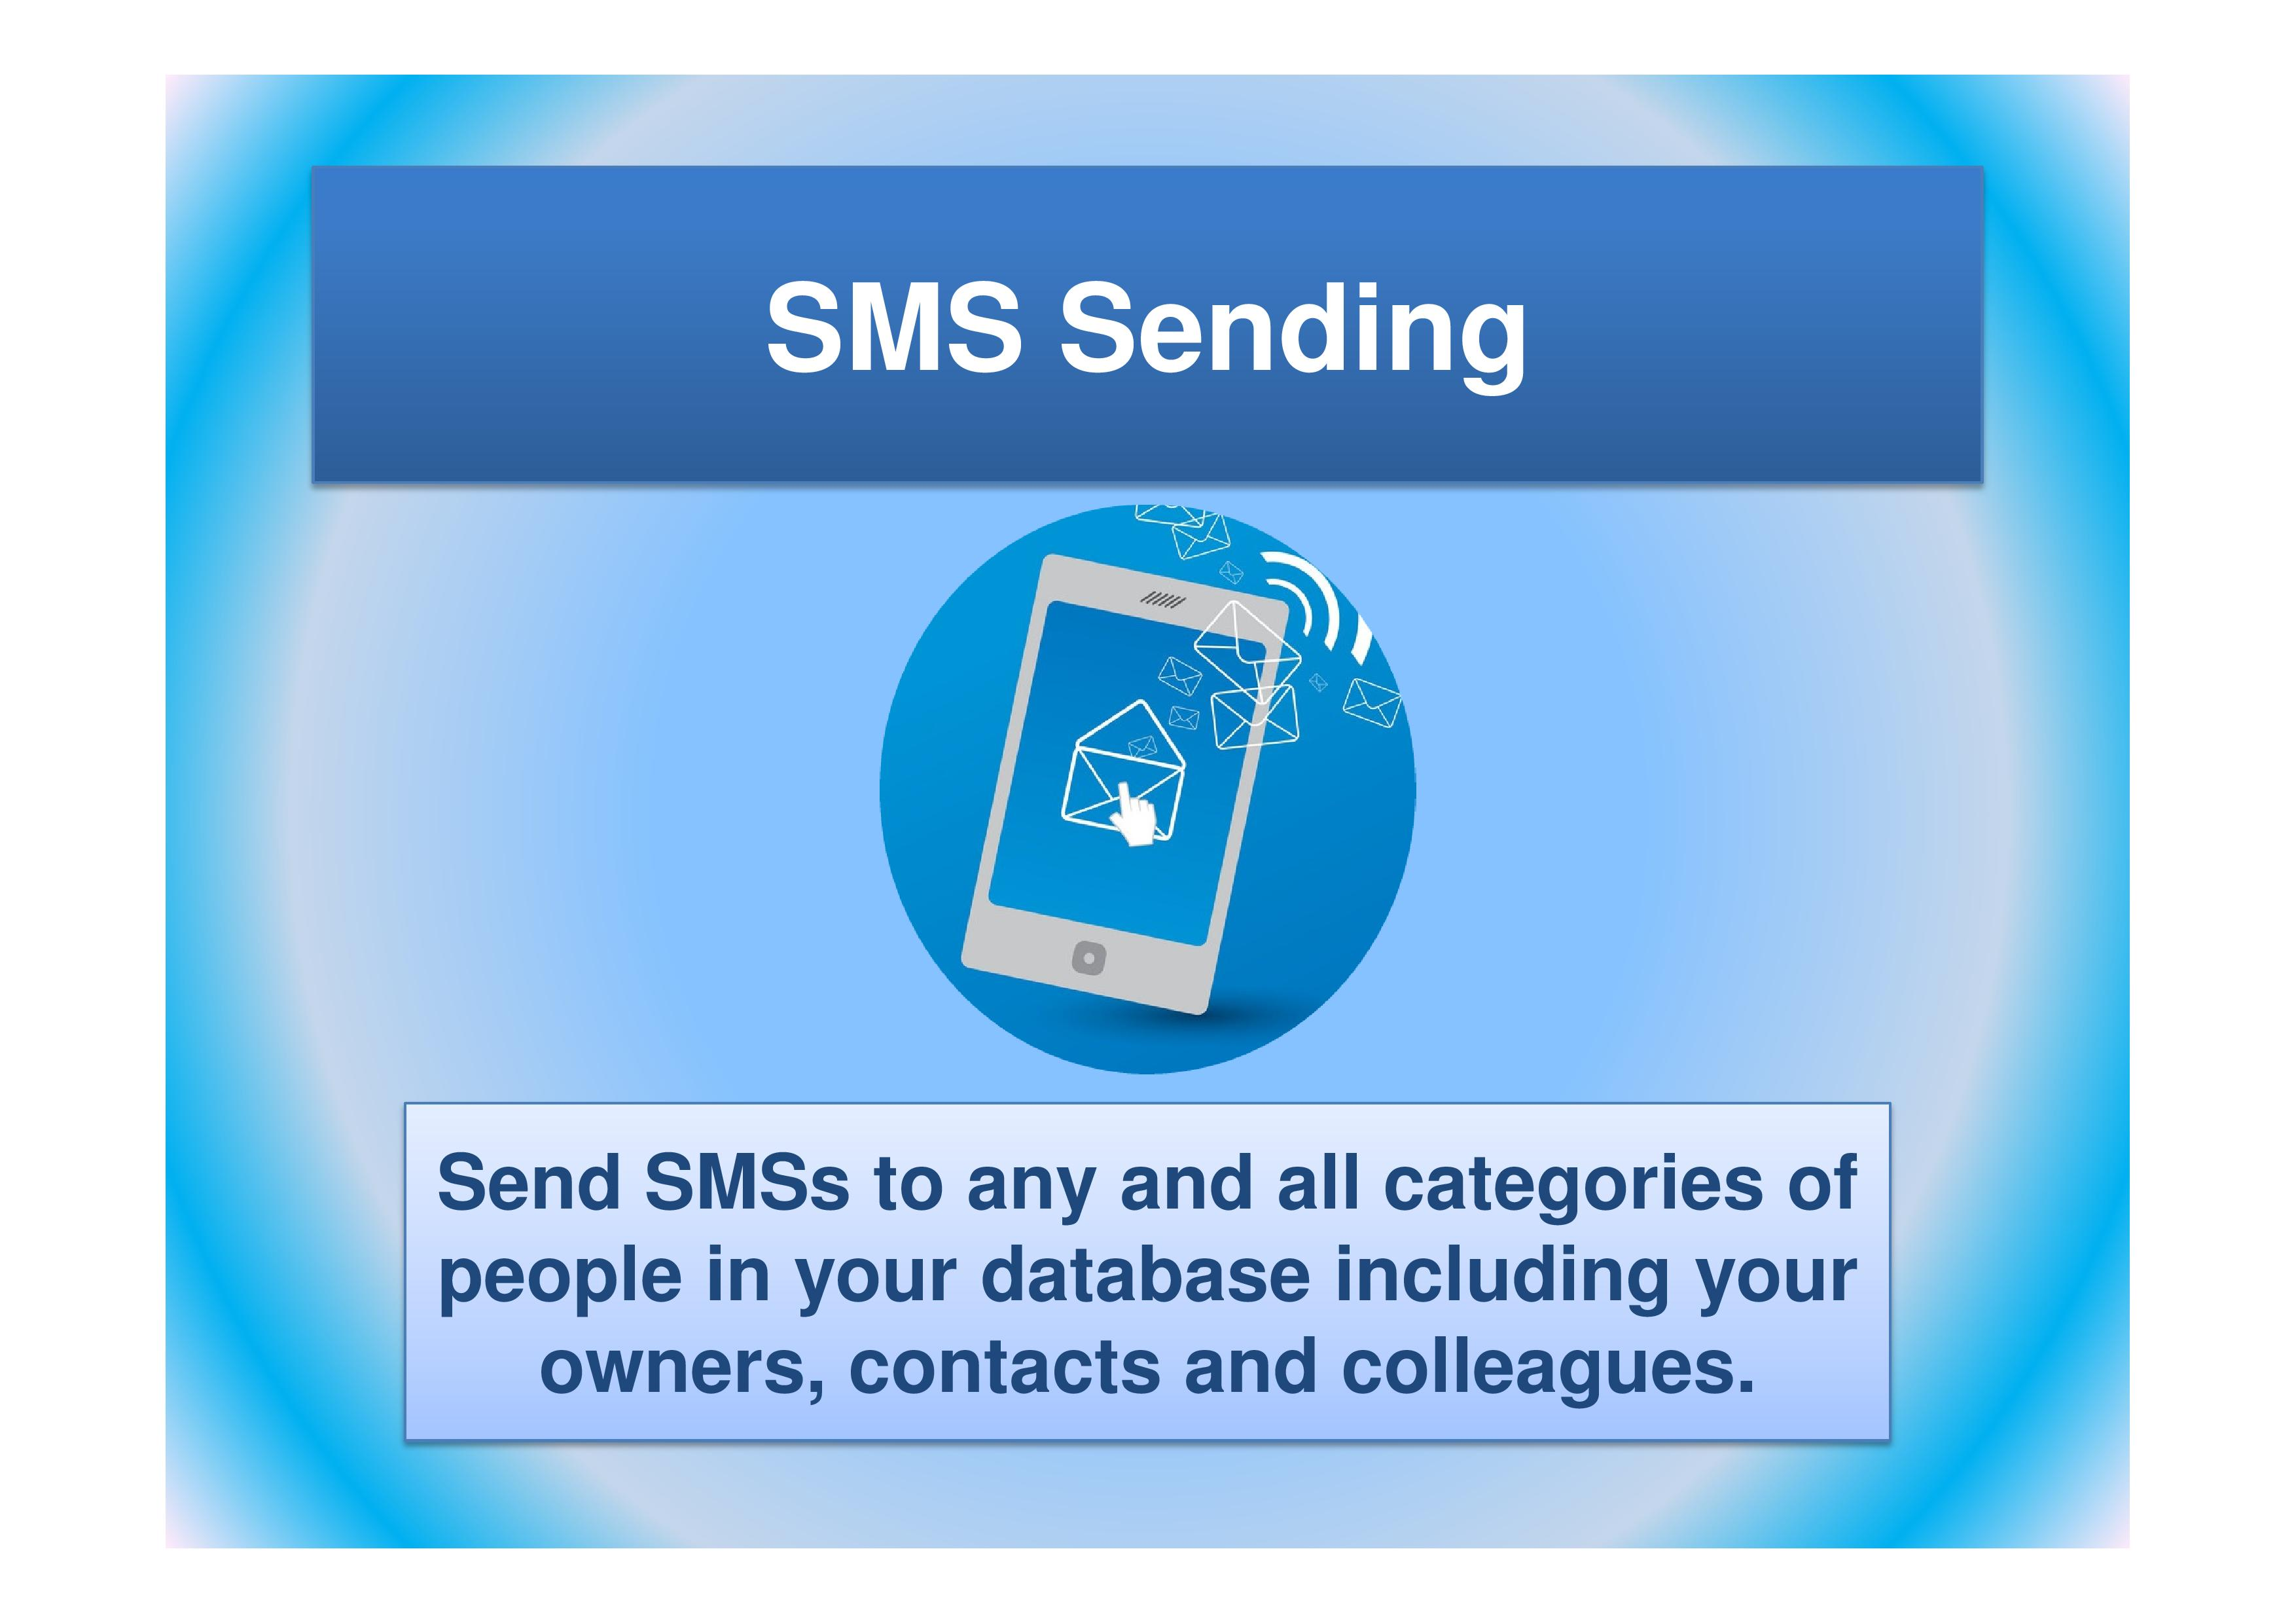 Send SMSs to any and all categories of people in your database including your owners, contacts and colleagues.